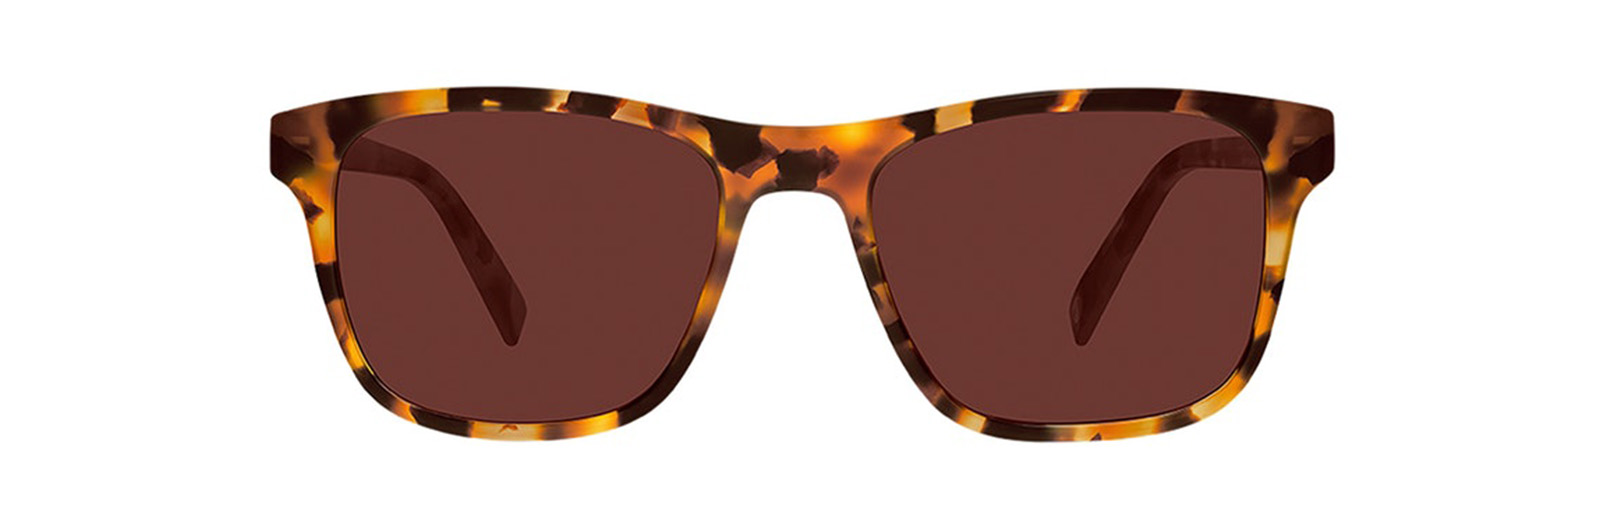 These Justin Timberlake x Warby Parker Sunglasses Might Look Good On Your Face